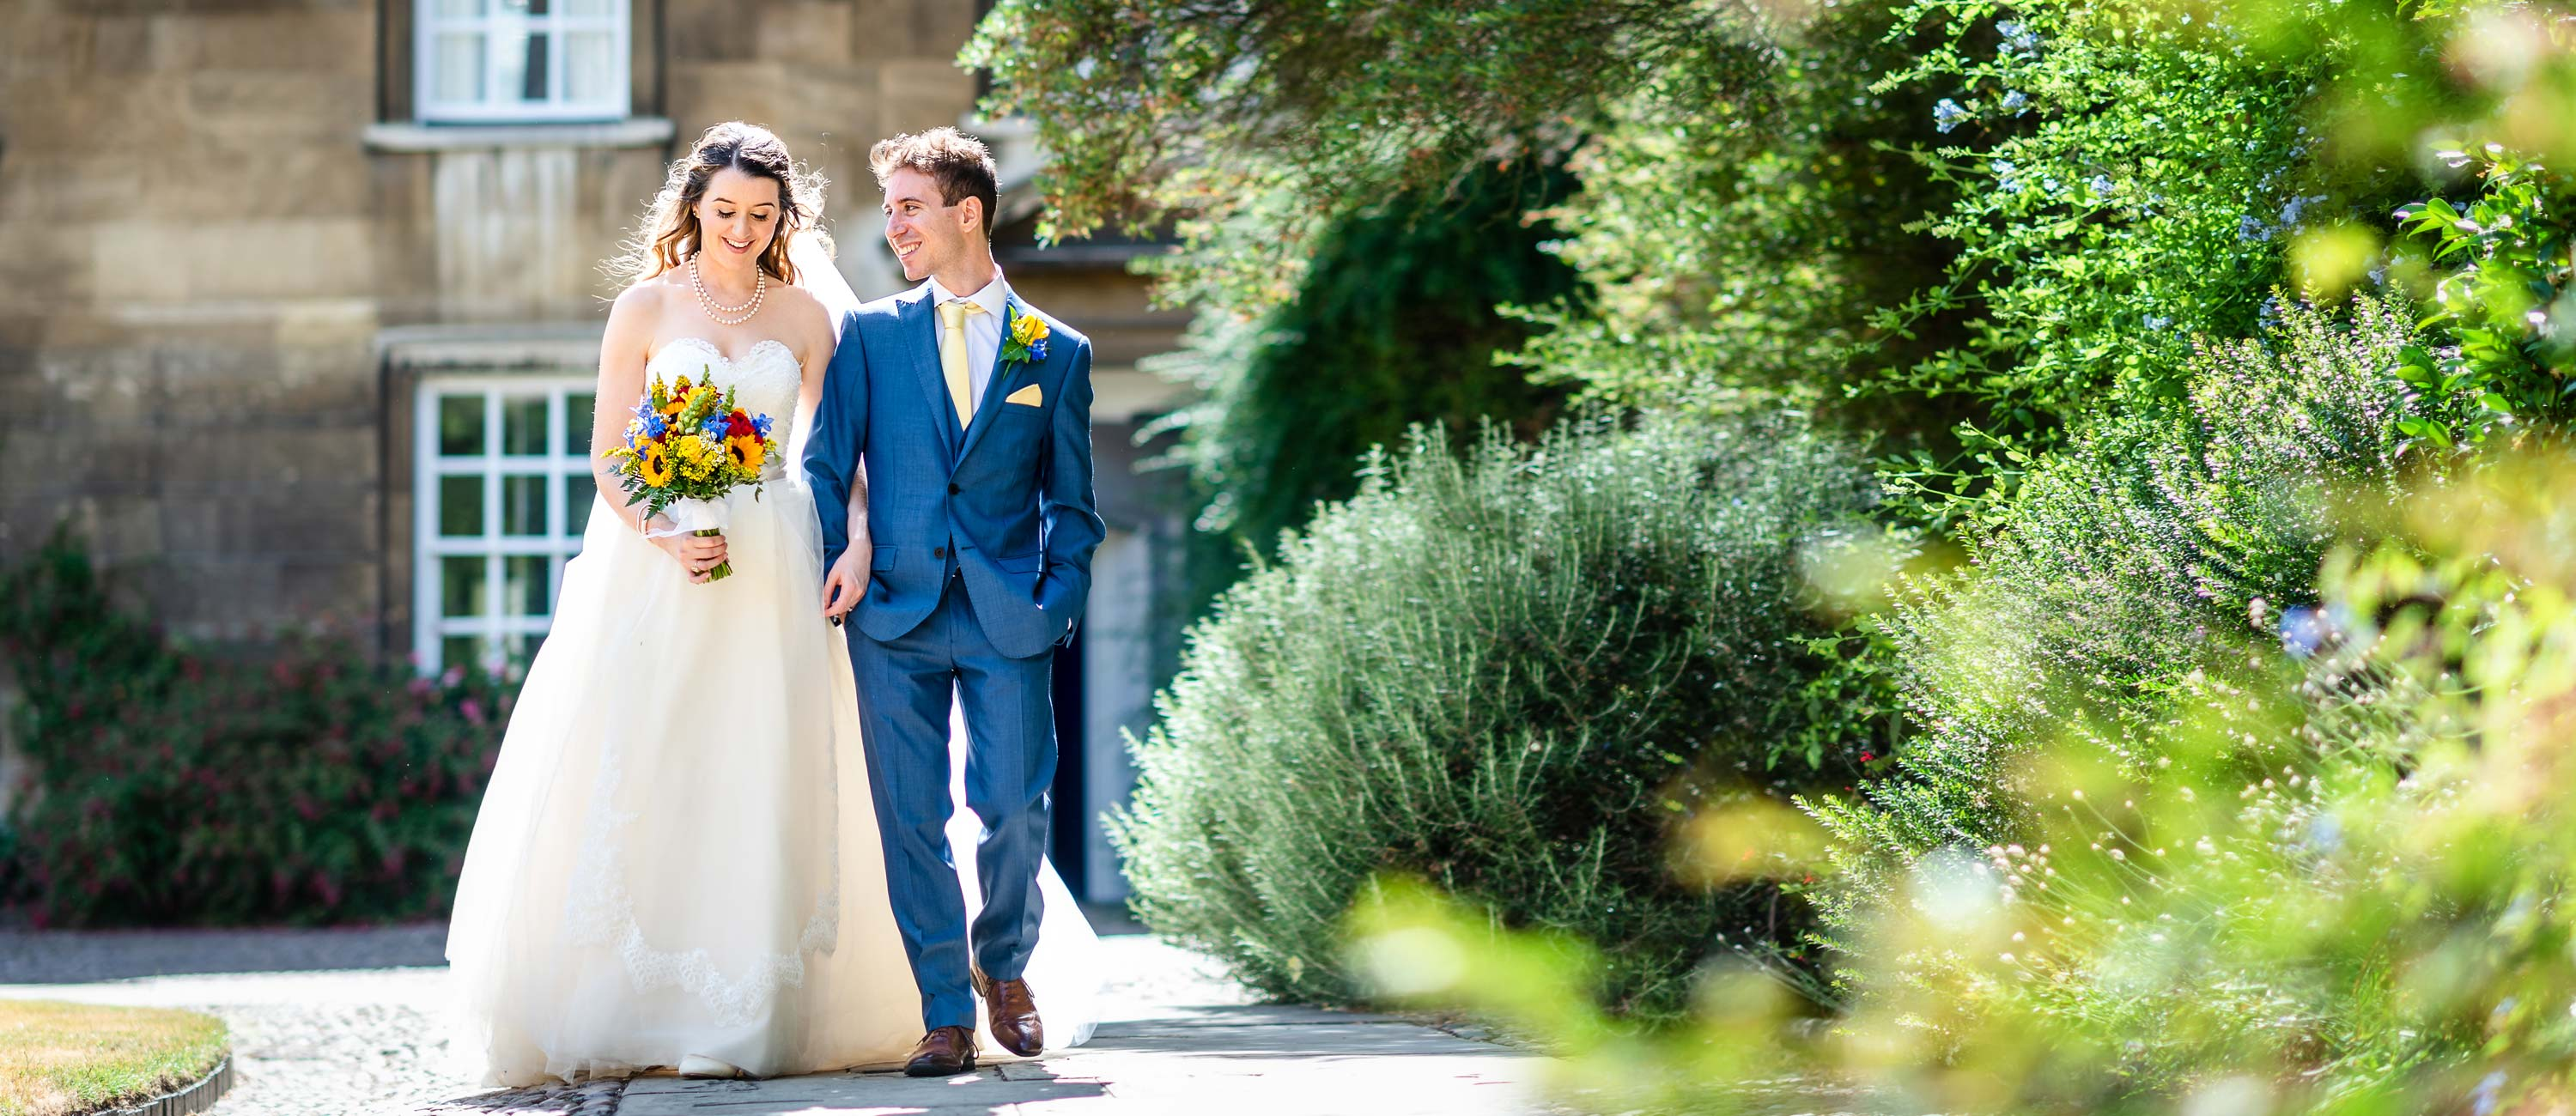 recommended wedding photographer christs college cambridge